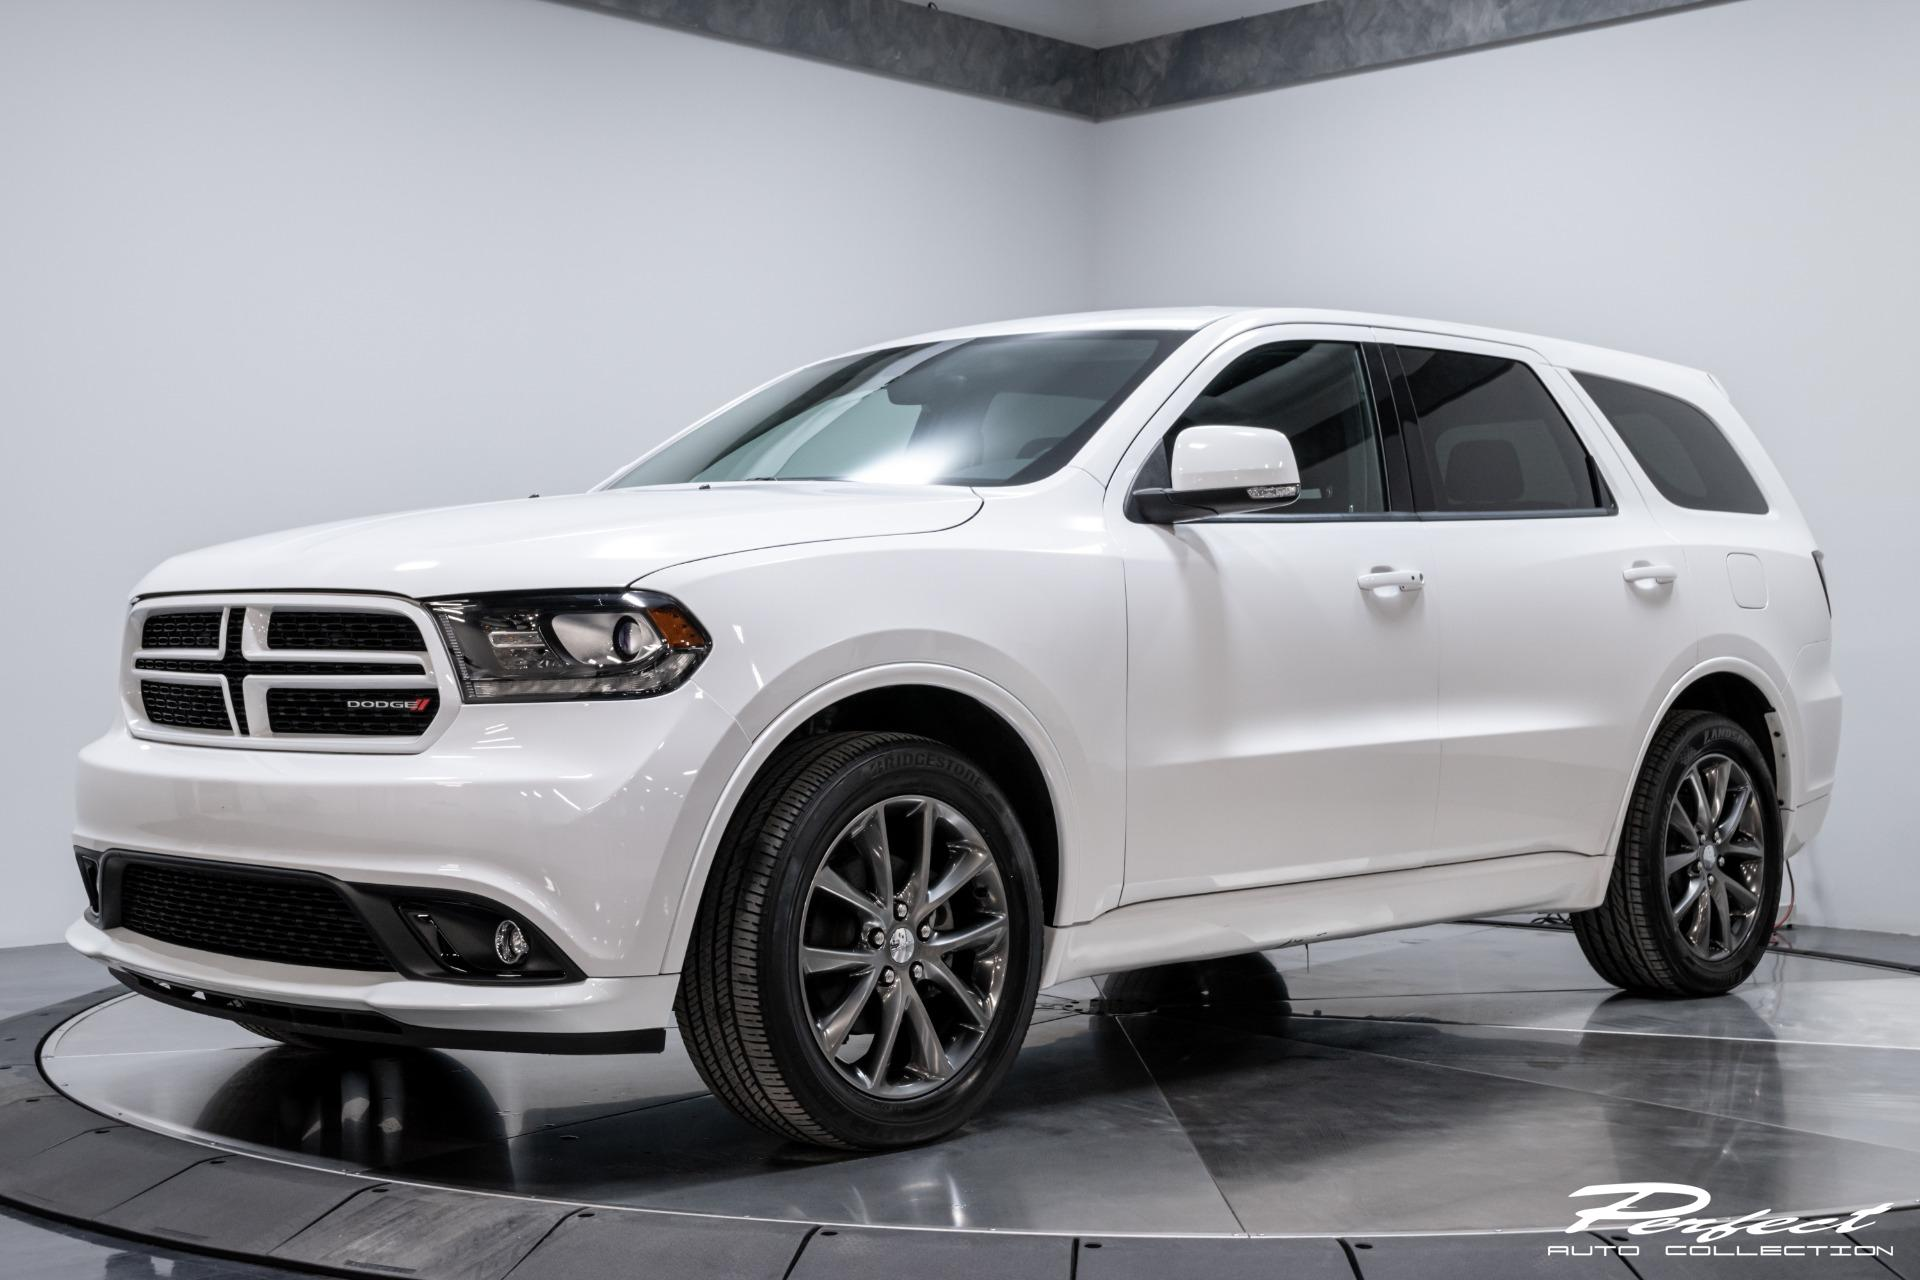 Used 2017 Dodge Durango GT for sale Sold at Perfect Auto Collection in Akron OH 44310 1